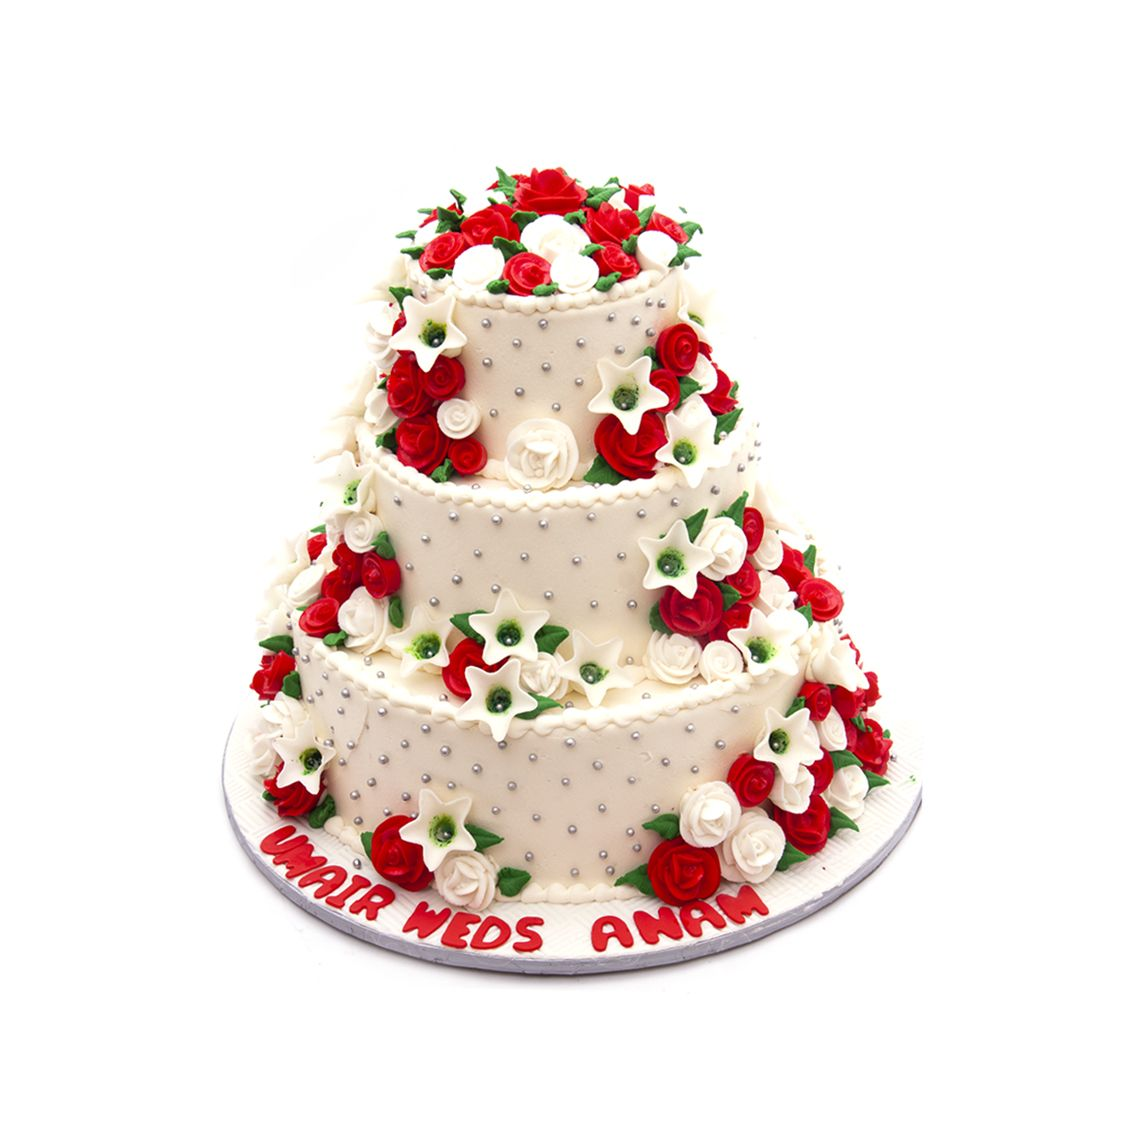 Kitchen Cuisine Default Category Red & White Wedding Cake